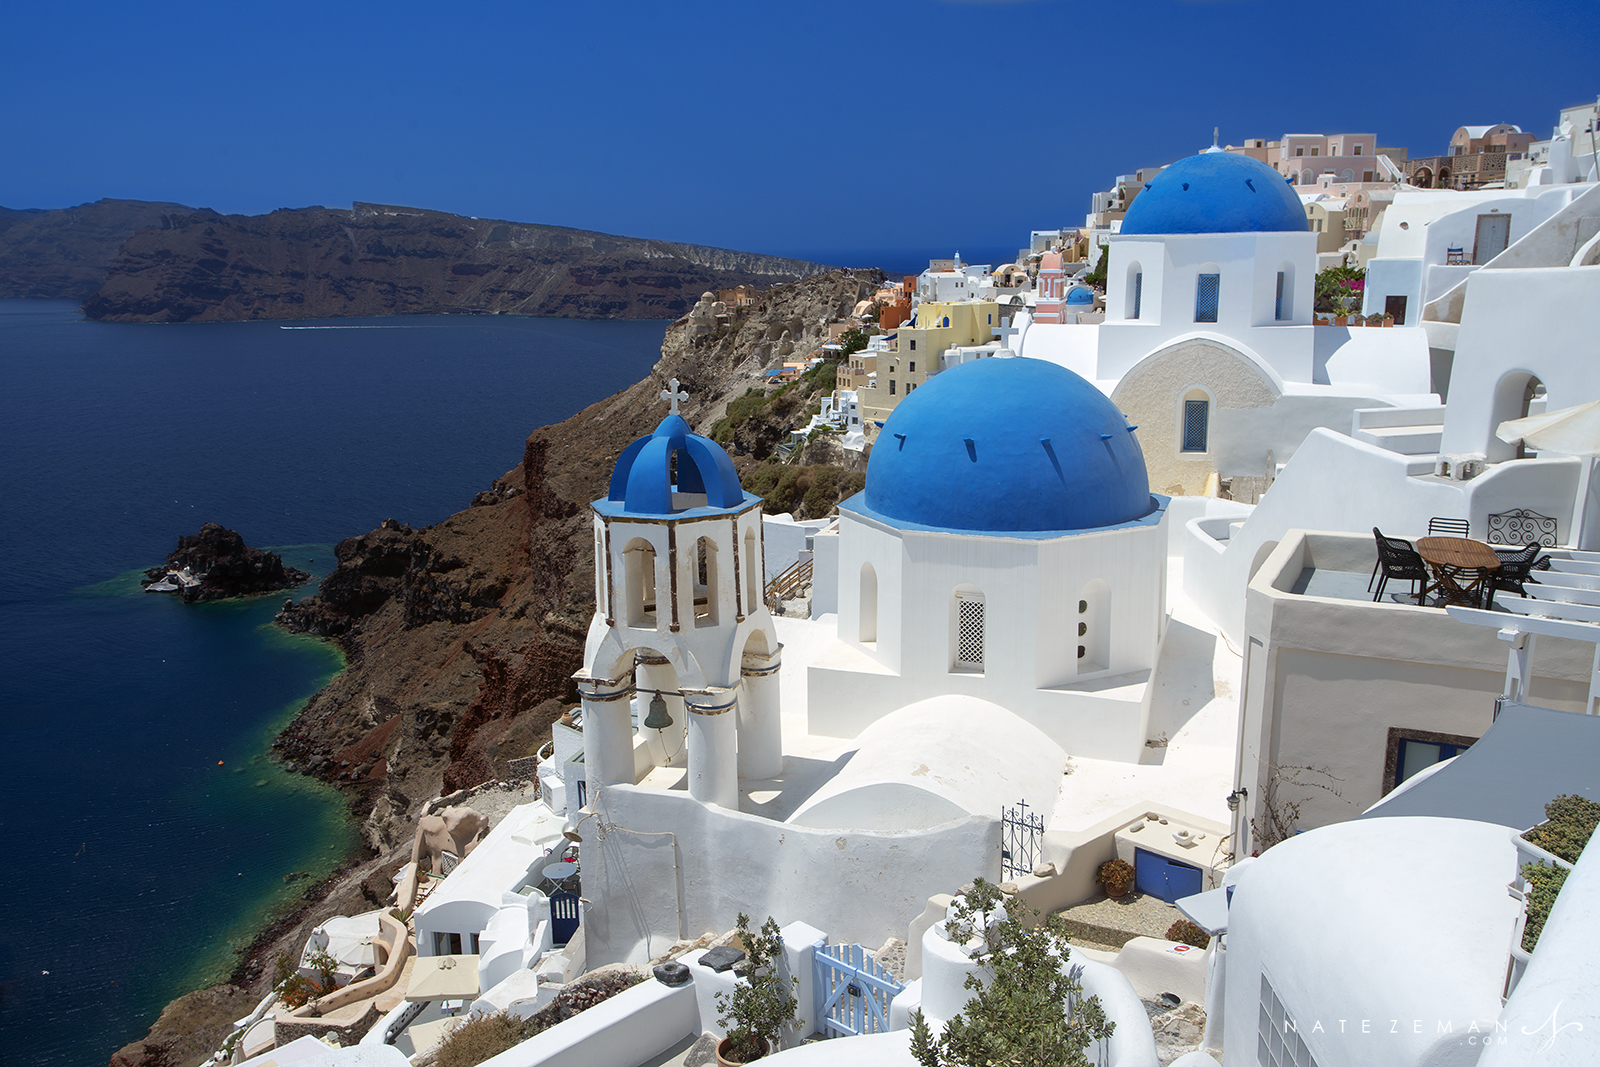 Santorini, greece, blue domes, dome, church, blue, sky, aegean, , photo